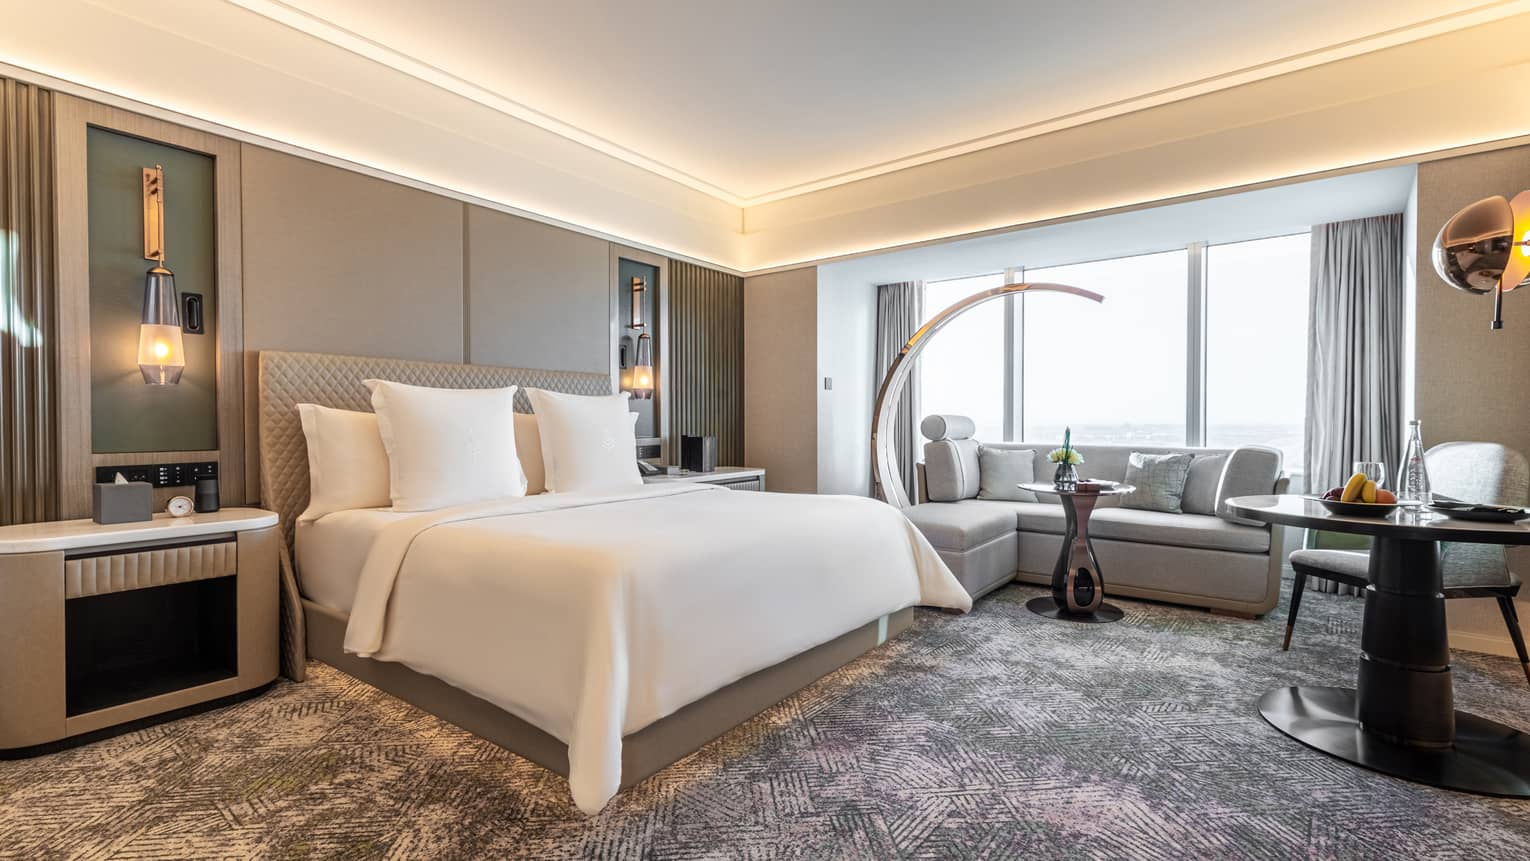 Hotel room with illuminated ceiling, grey walls and carpeting, white king bed, grey sofa and curved floor lamp